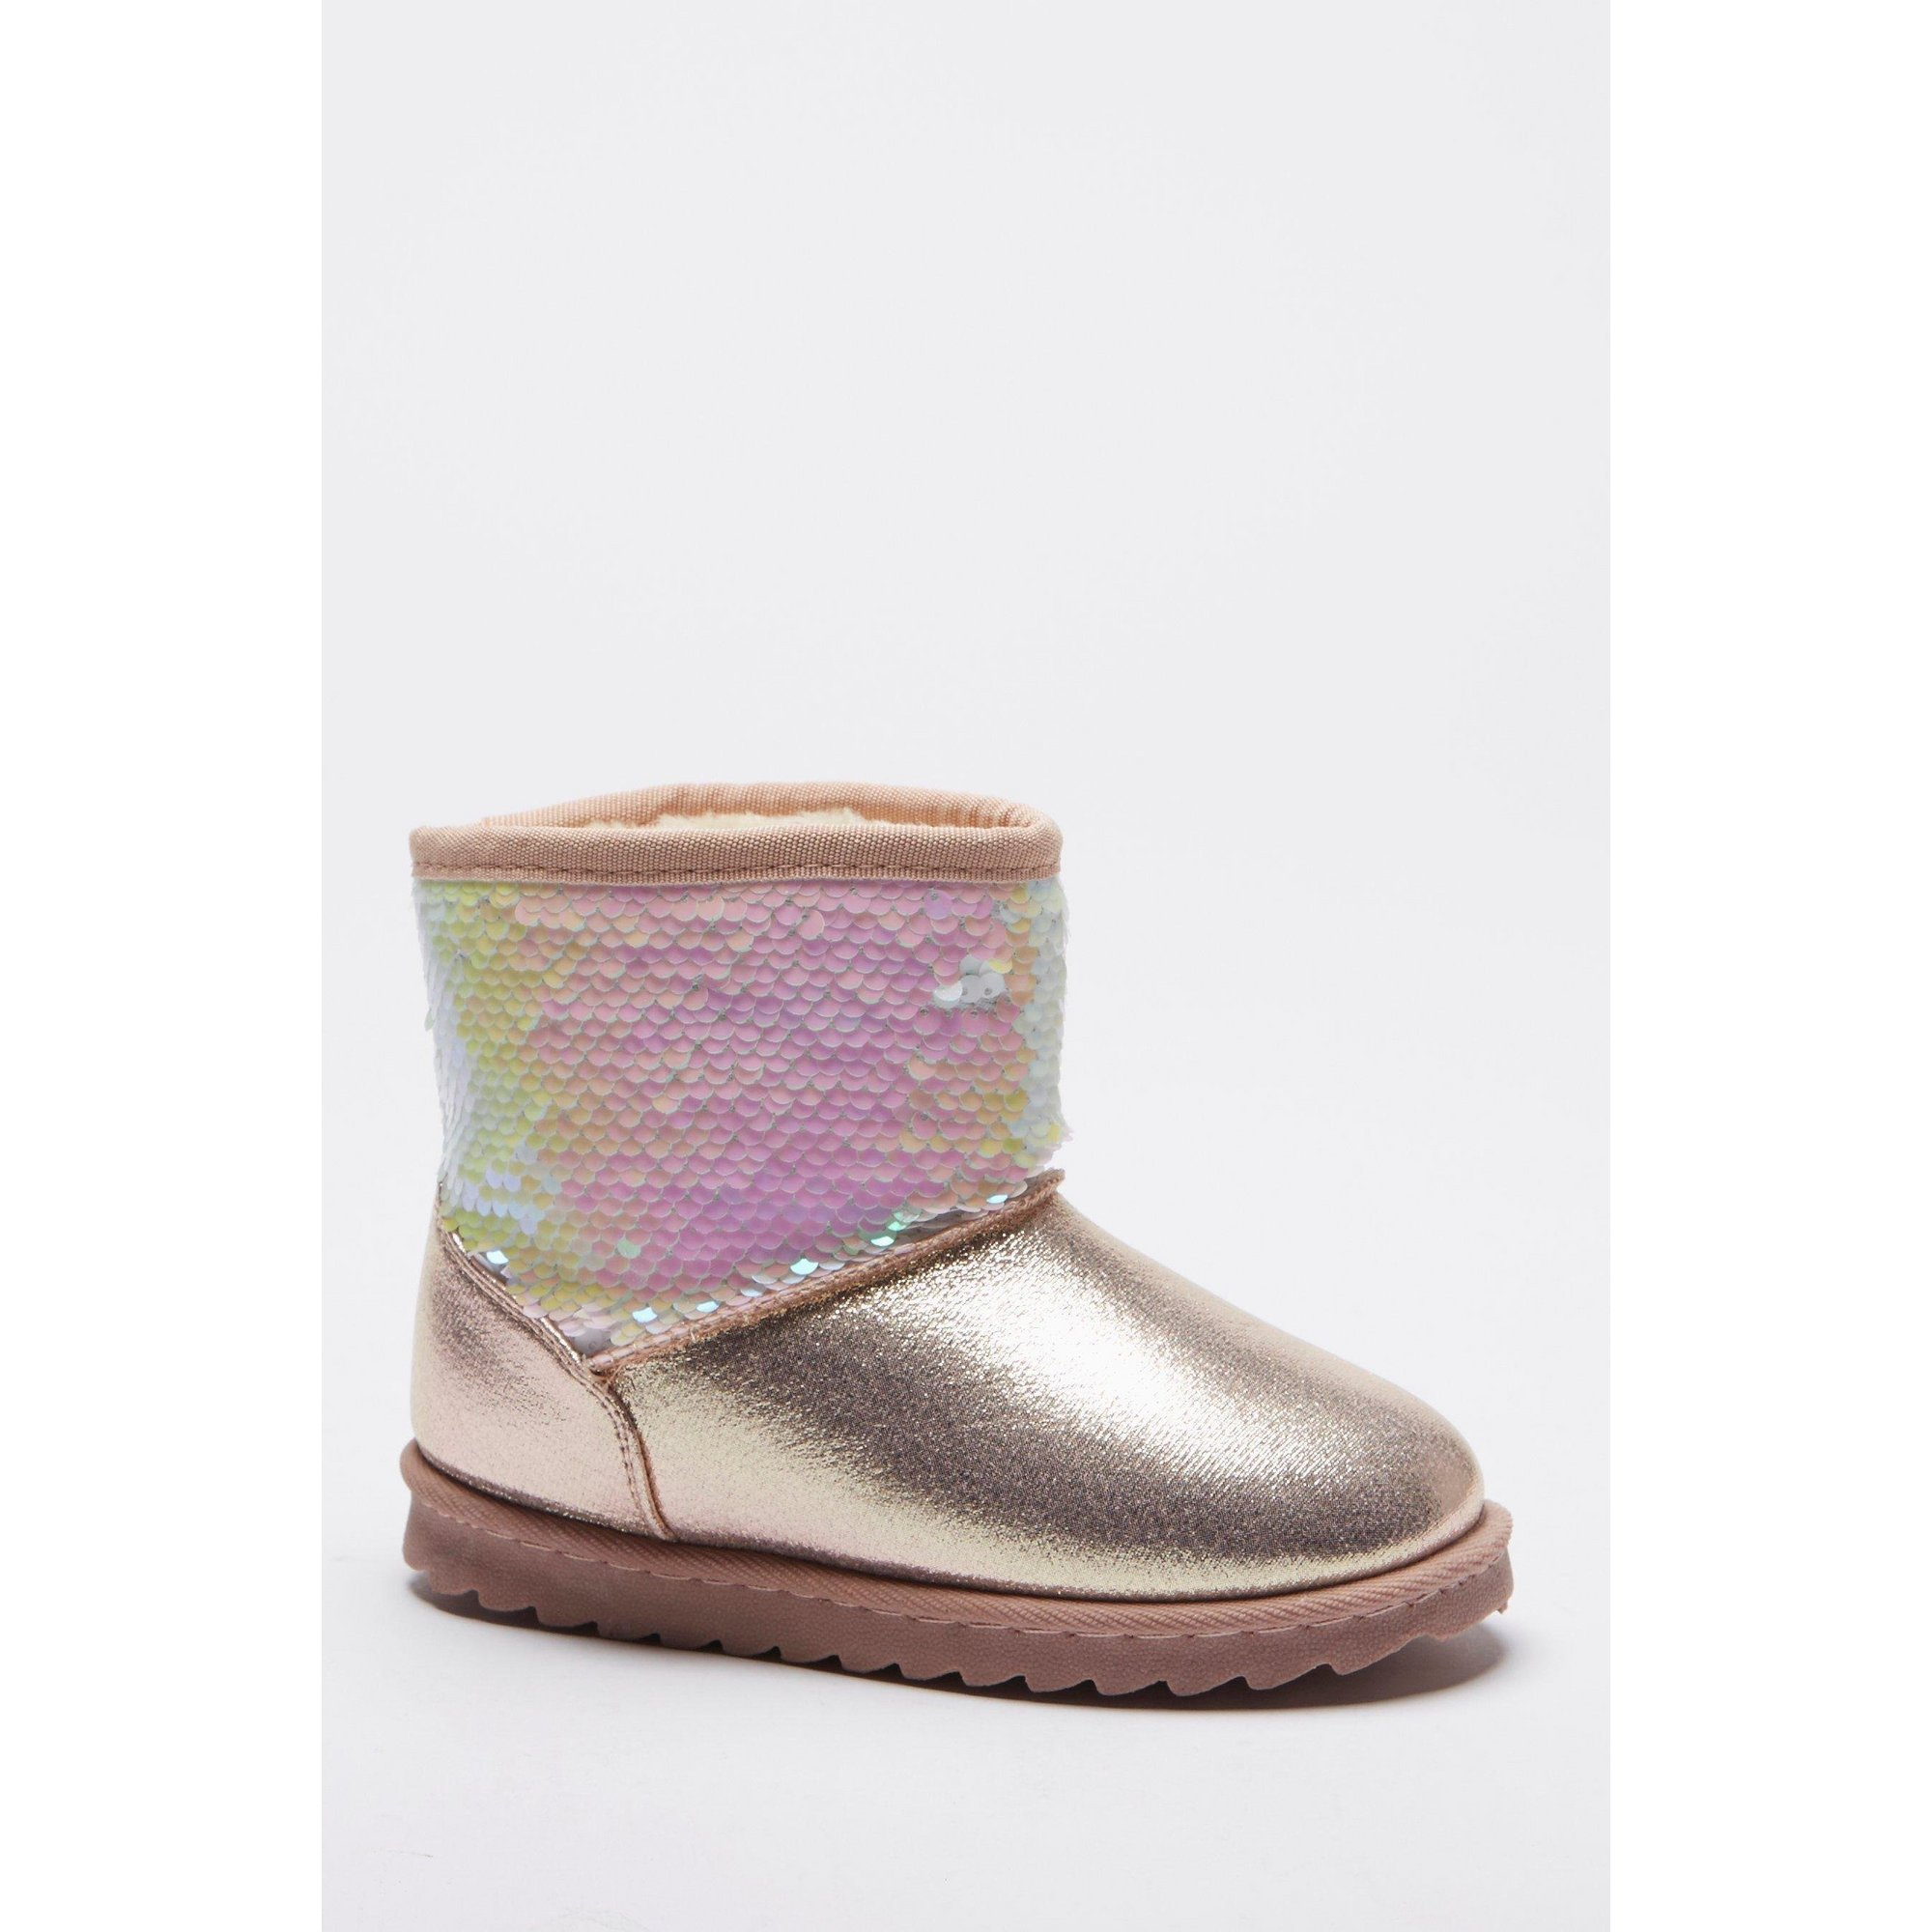 Image of Girls Sequin Faux Fur Boots